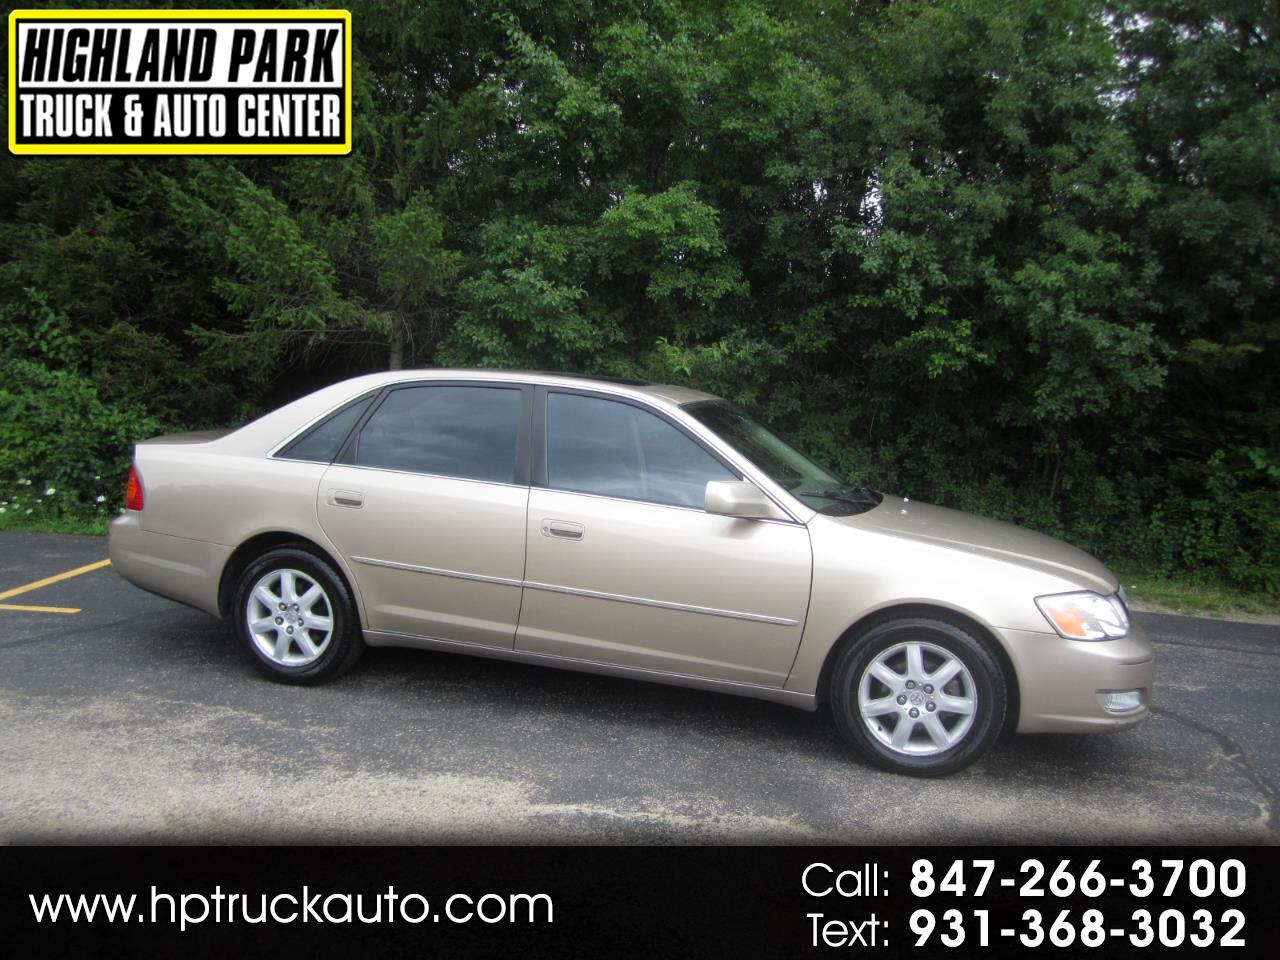 Toyota Avalon 2001 for Sale in Highland Park, IL